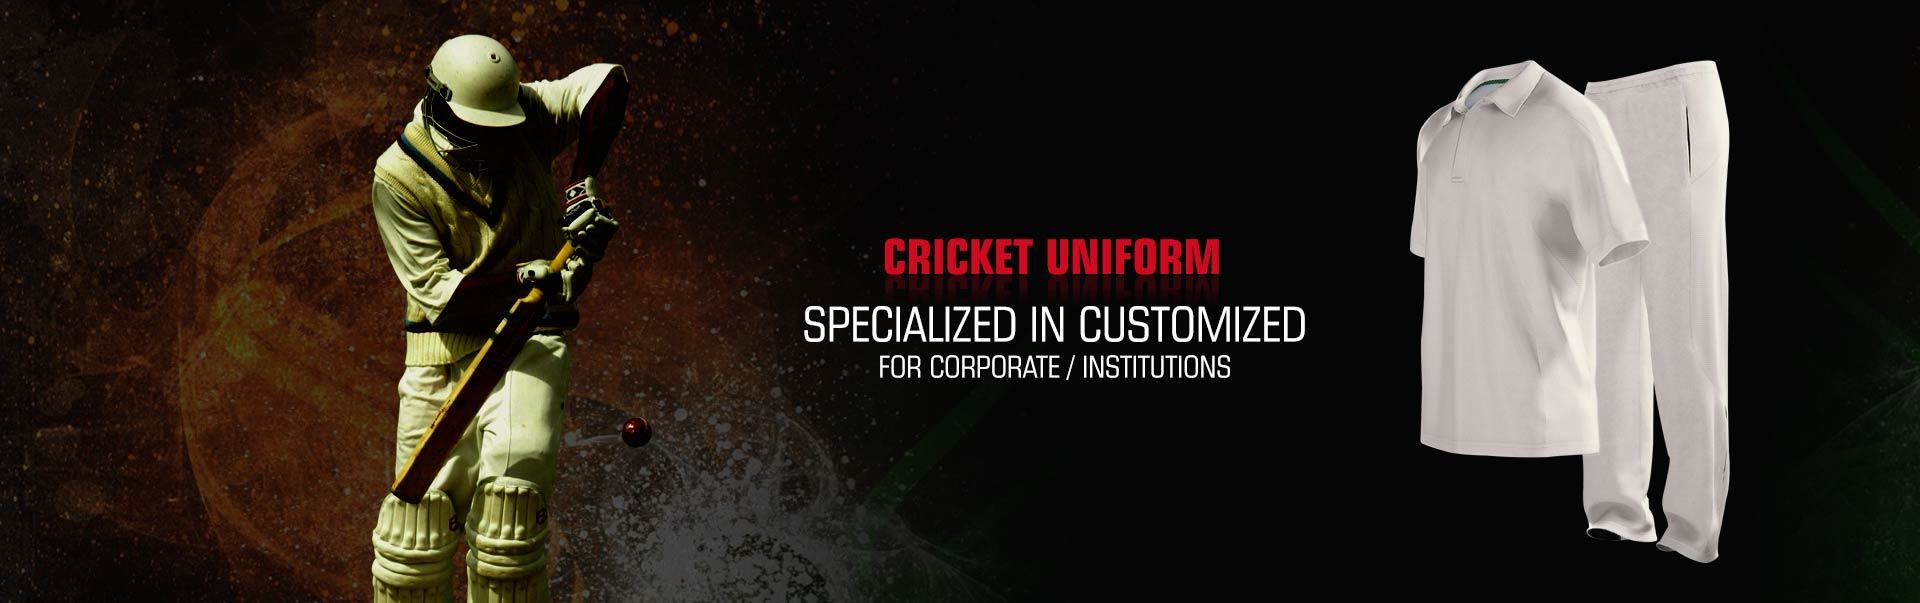 Cricket Uniform Wholesaler, Suppliers in Saint John